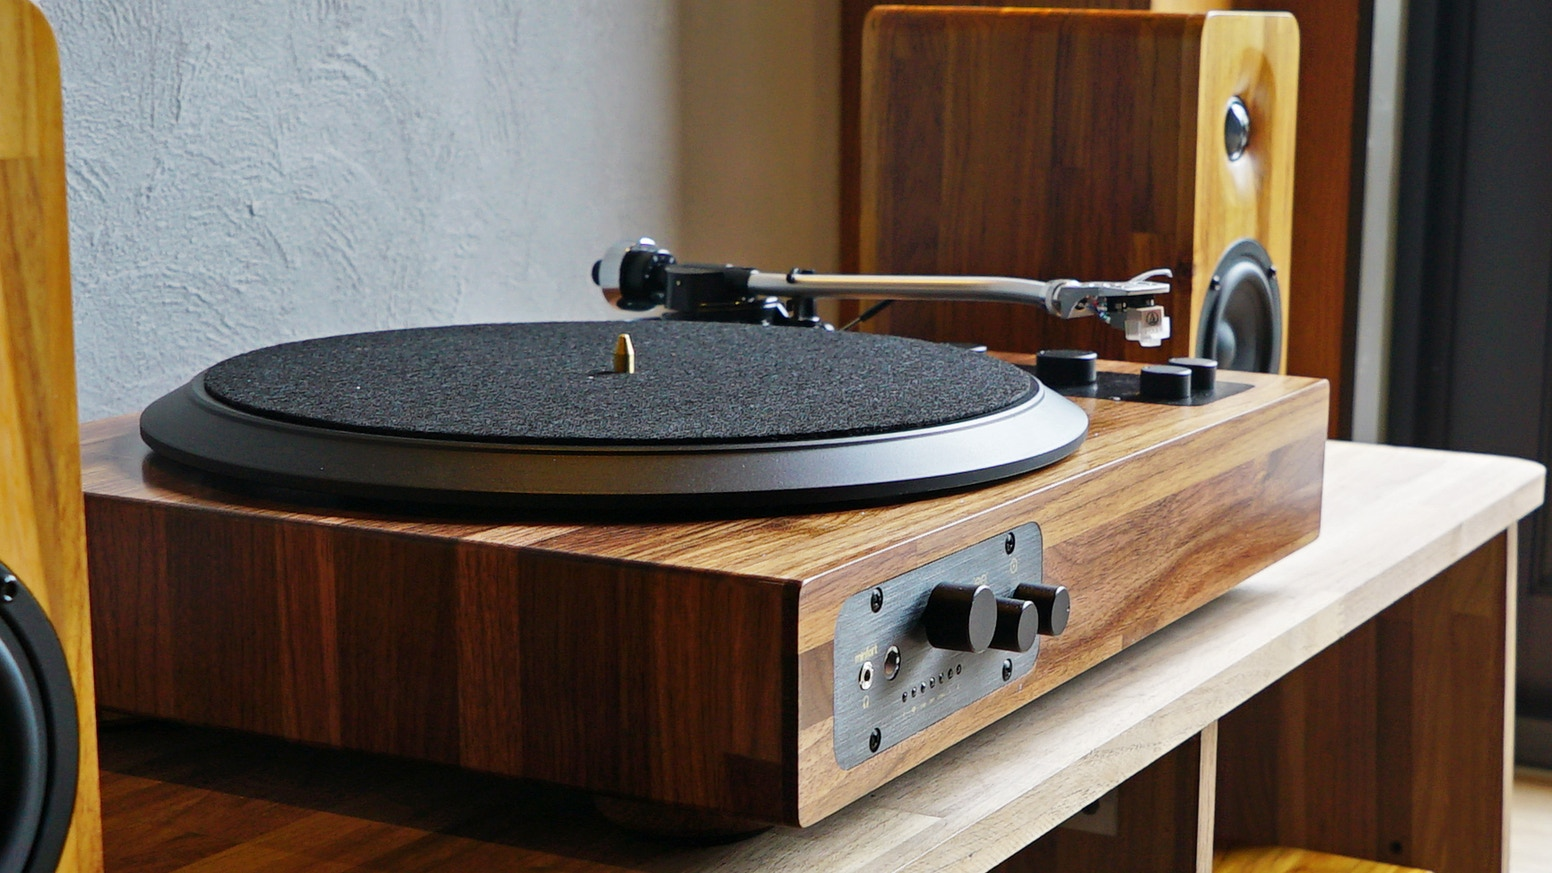 TT8 - The Best Wooden Multi-Functional Turntable